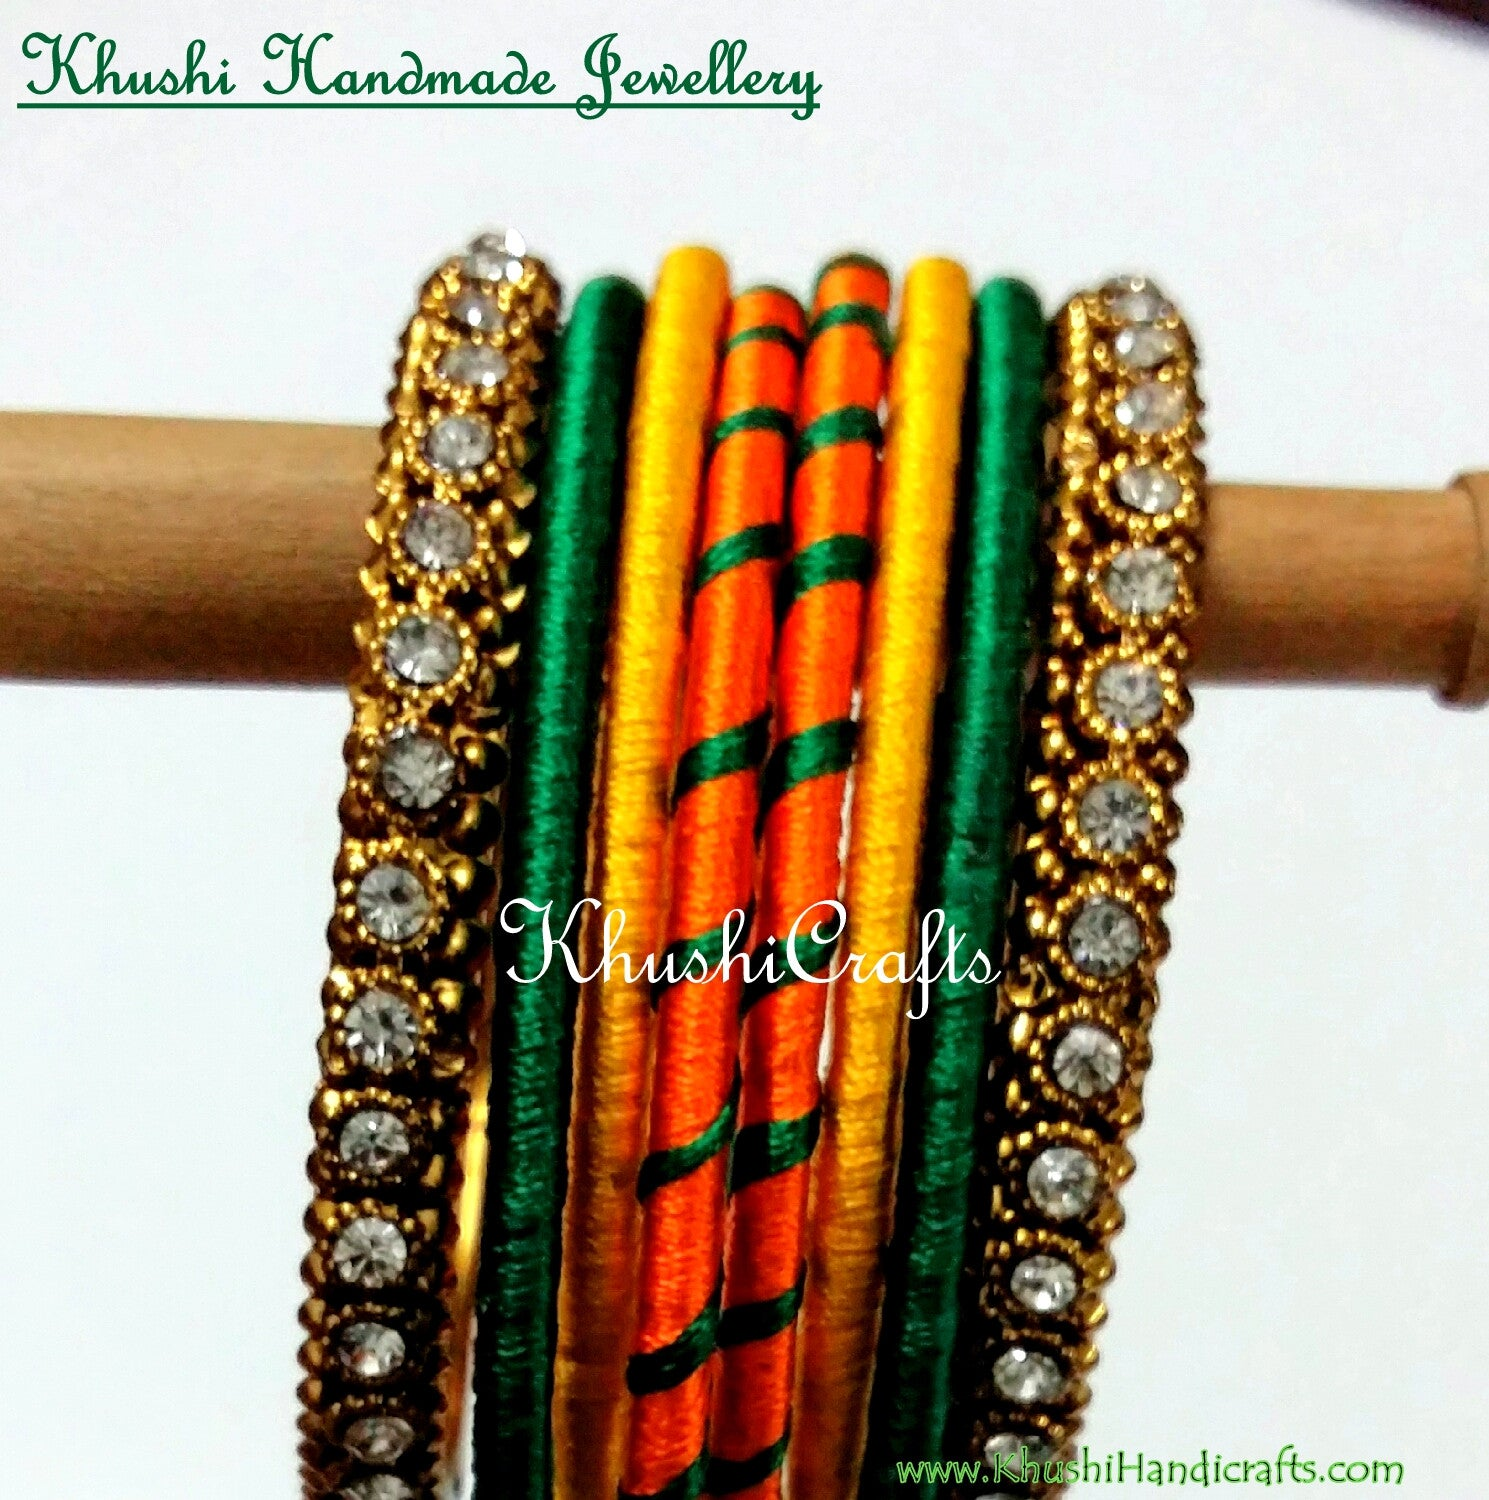 Hand-crafted Silk Bangles in Orange Yellow and Green - Khushi Handmade Jewellery